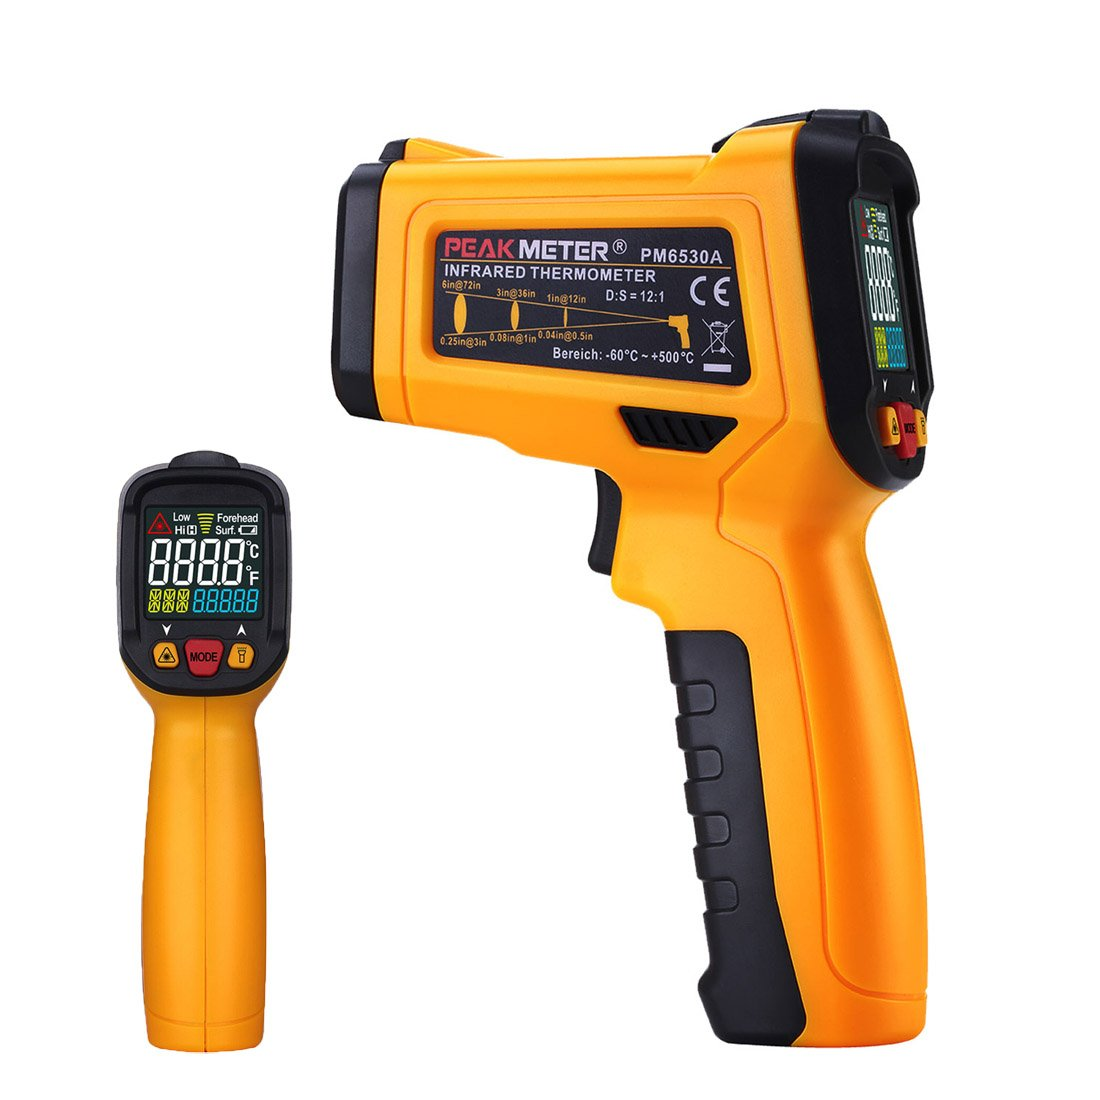 Digital Infrared thermometer Peakmeter PM6530A Laser IR Temperature Gun LCD for Kitchen Cooking Automotive with Temperature Bridge Alarm Function Display -58°F~572°F(-50°C~300°C) by uvcetech (Image #1)